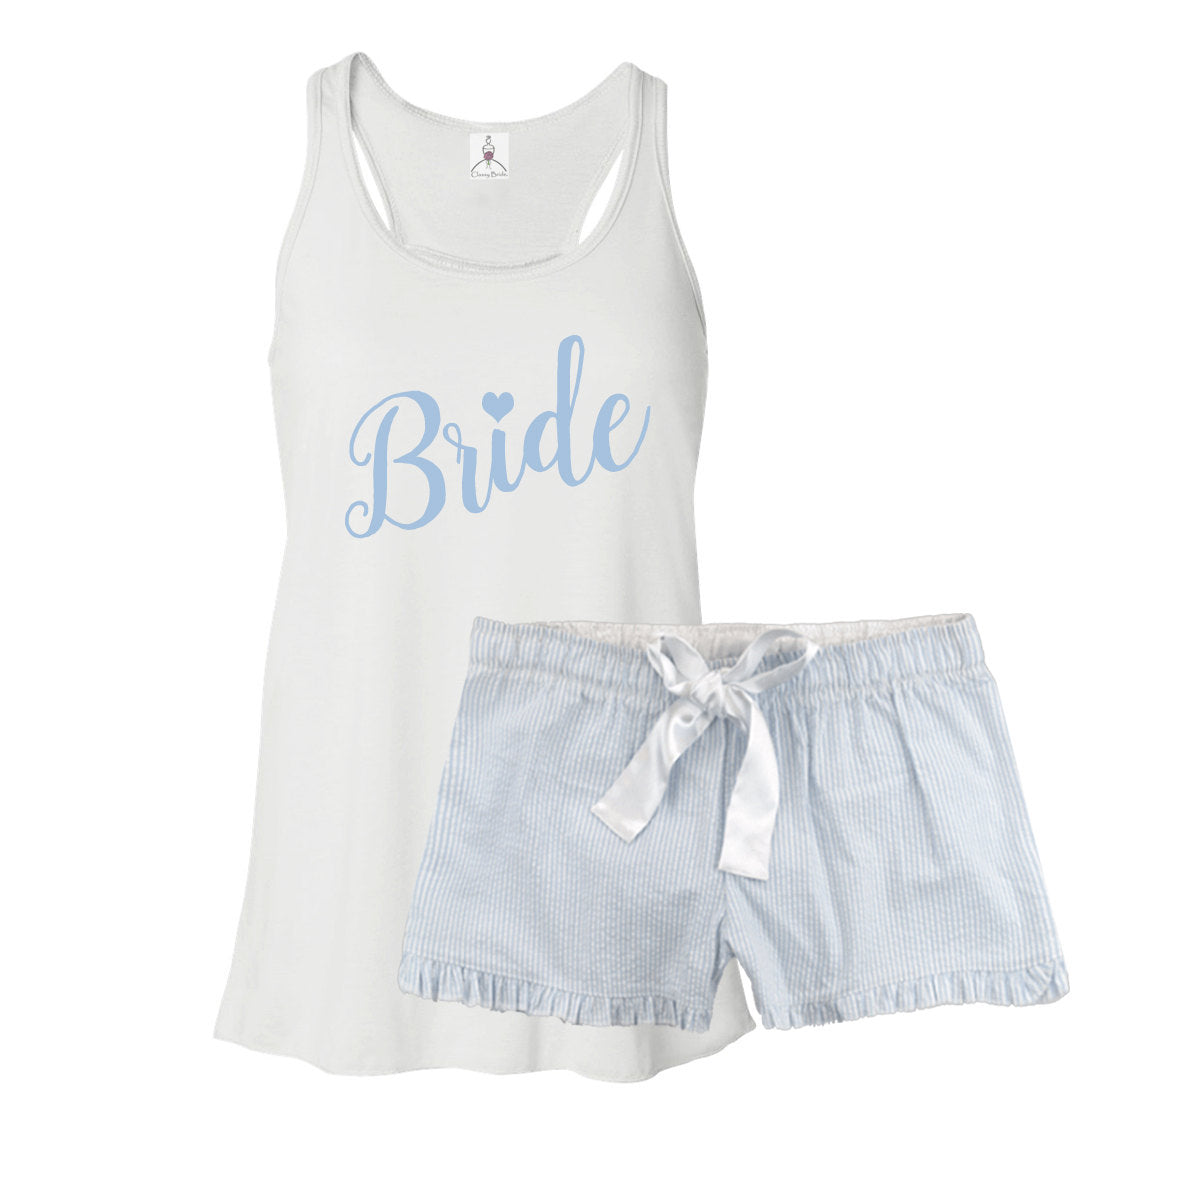 Bride Pajama Set - Something Blue